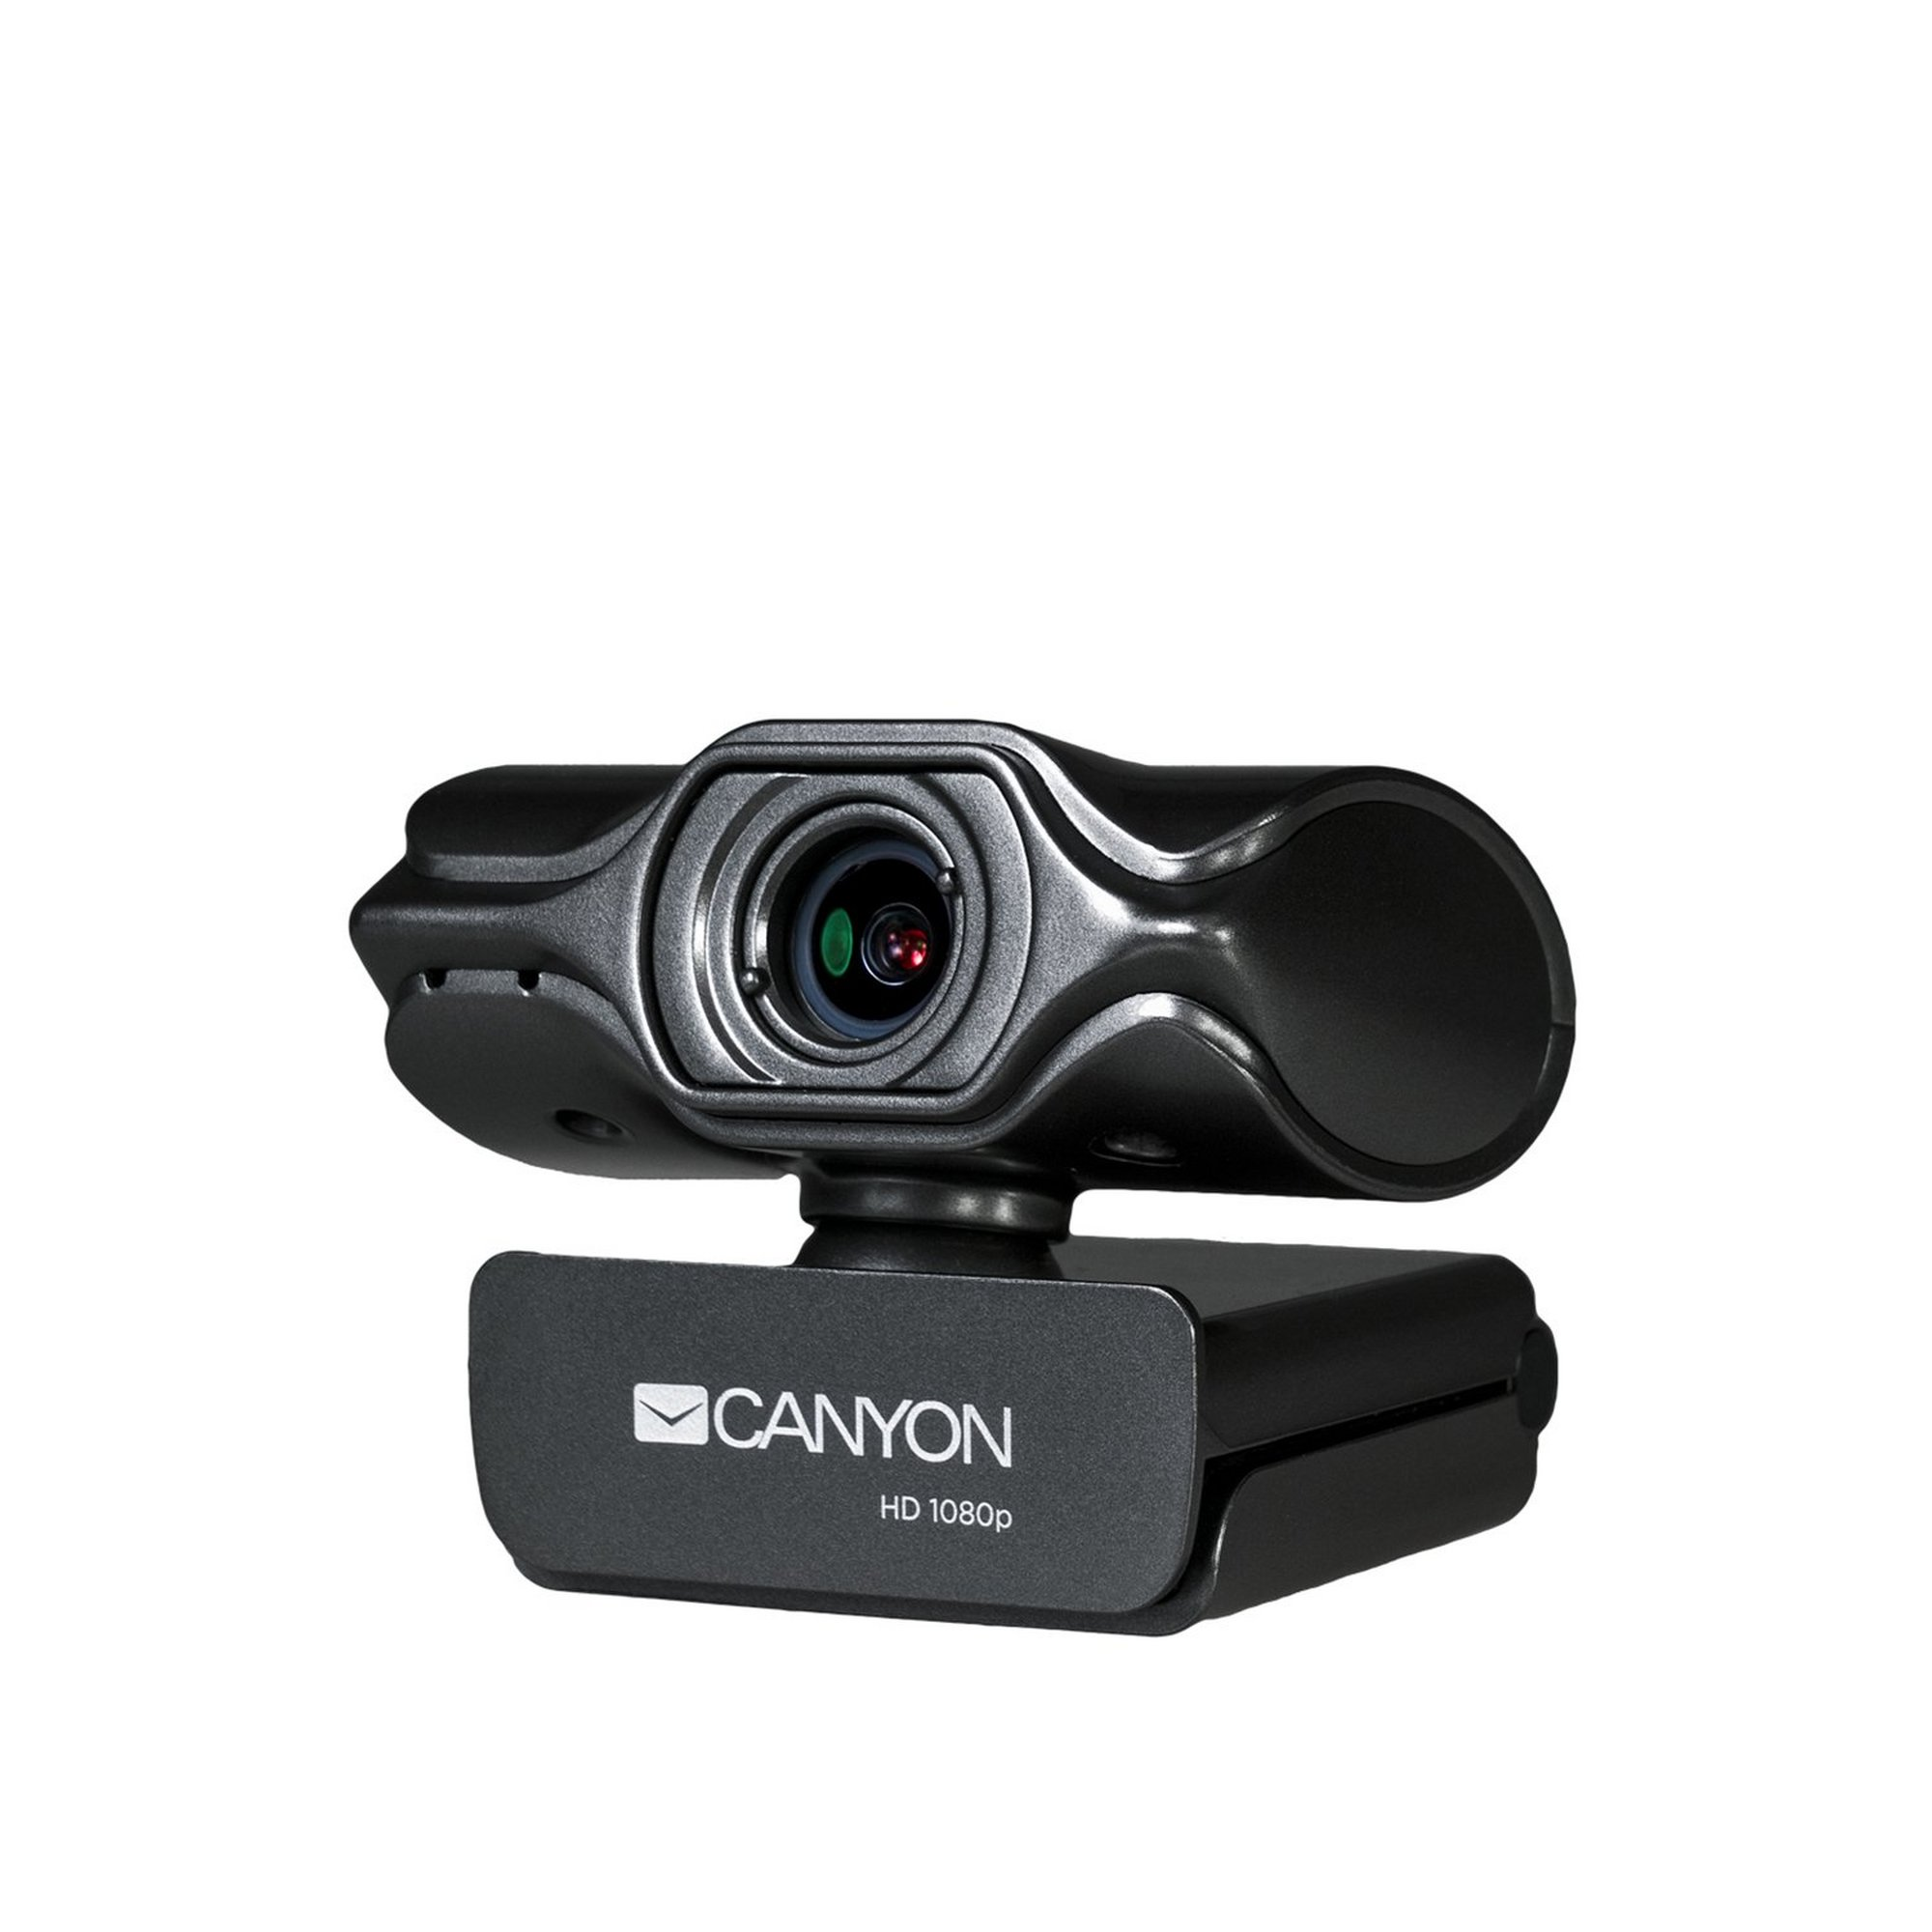 Image of Canyon 2K Quad HD USB Webcam with Integrated Microphone - Black